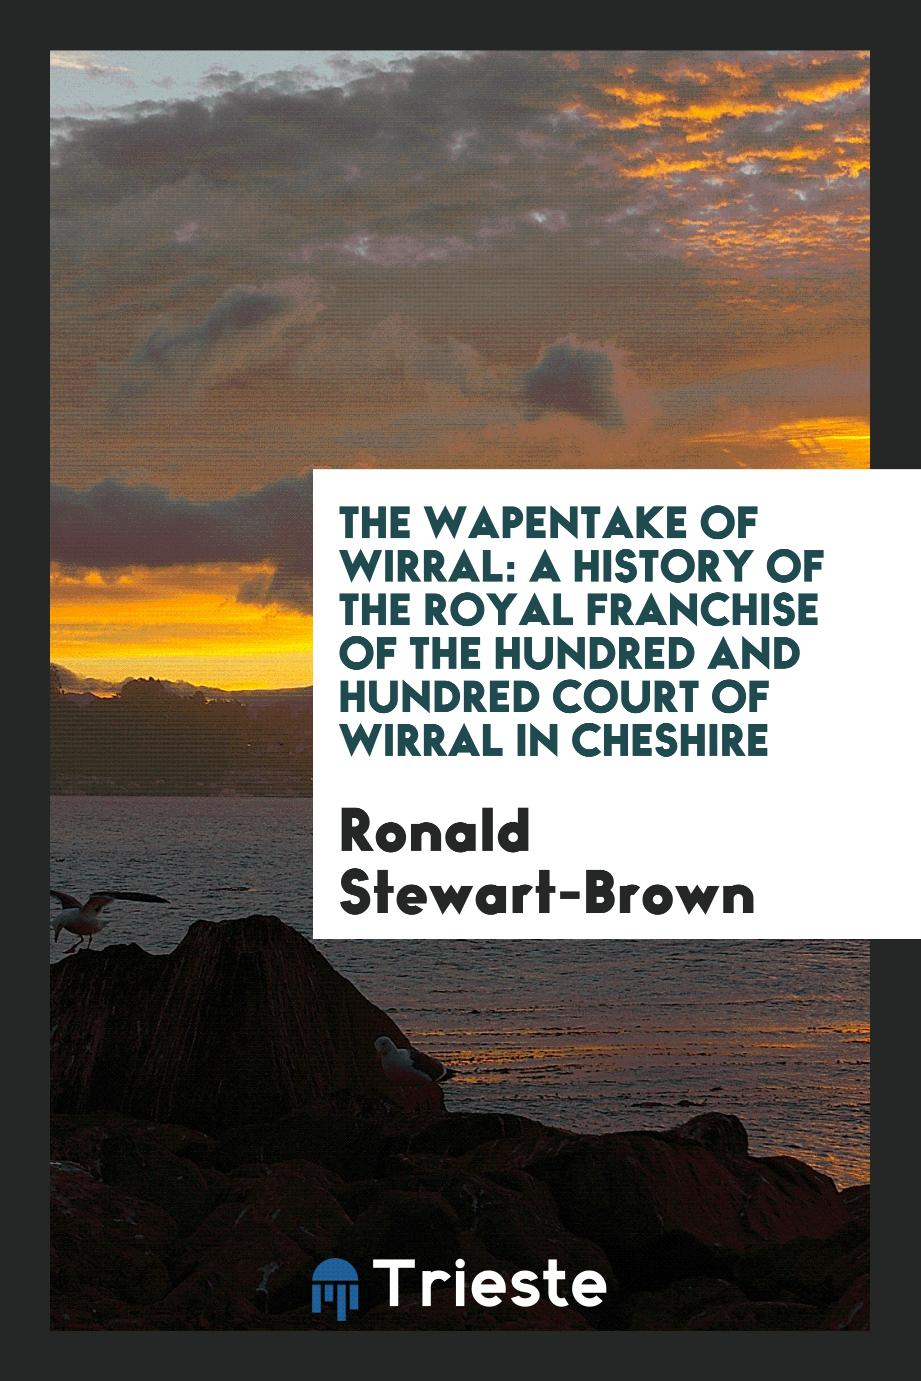 The Wapentake of Wirral: A History of the Royal Franchise of the Hundred and Hundred Court of Wirral in Cheshire